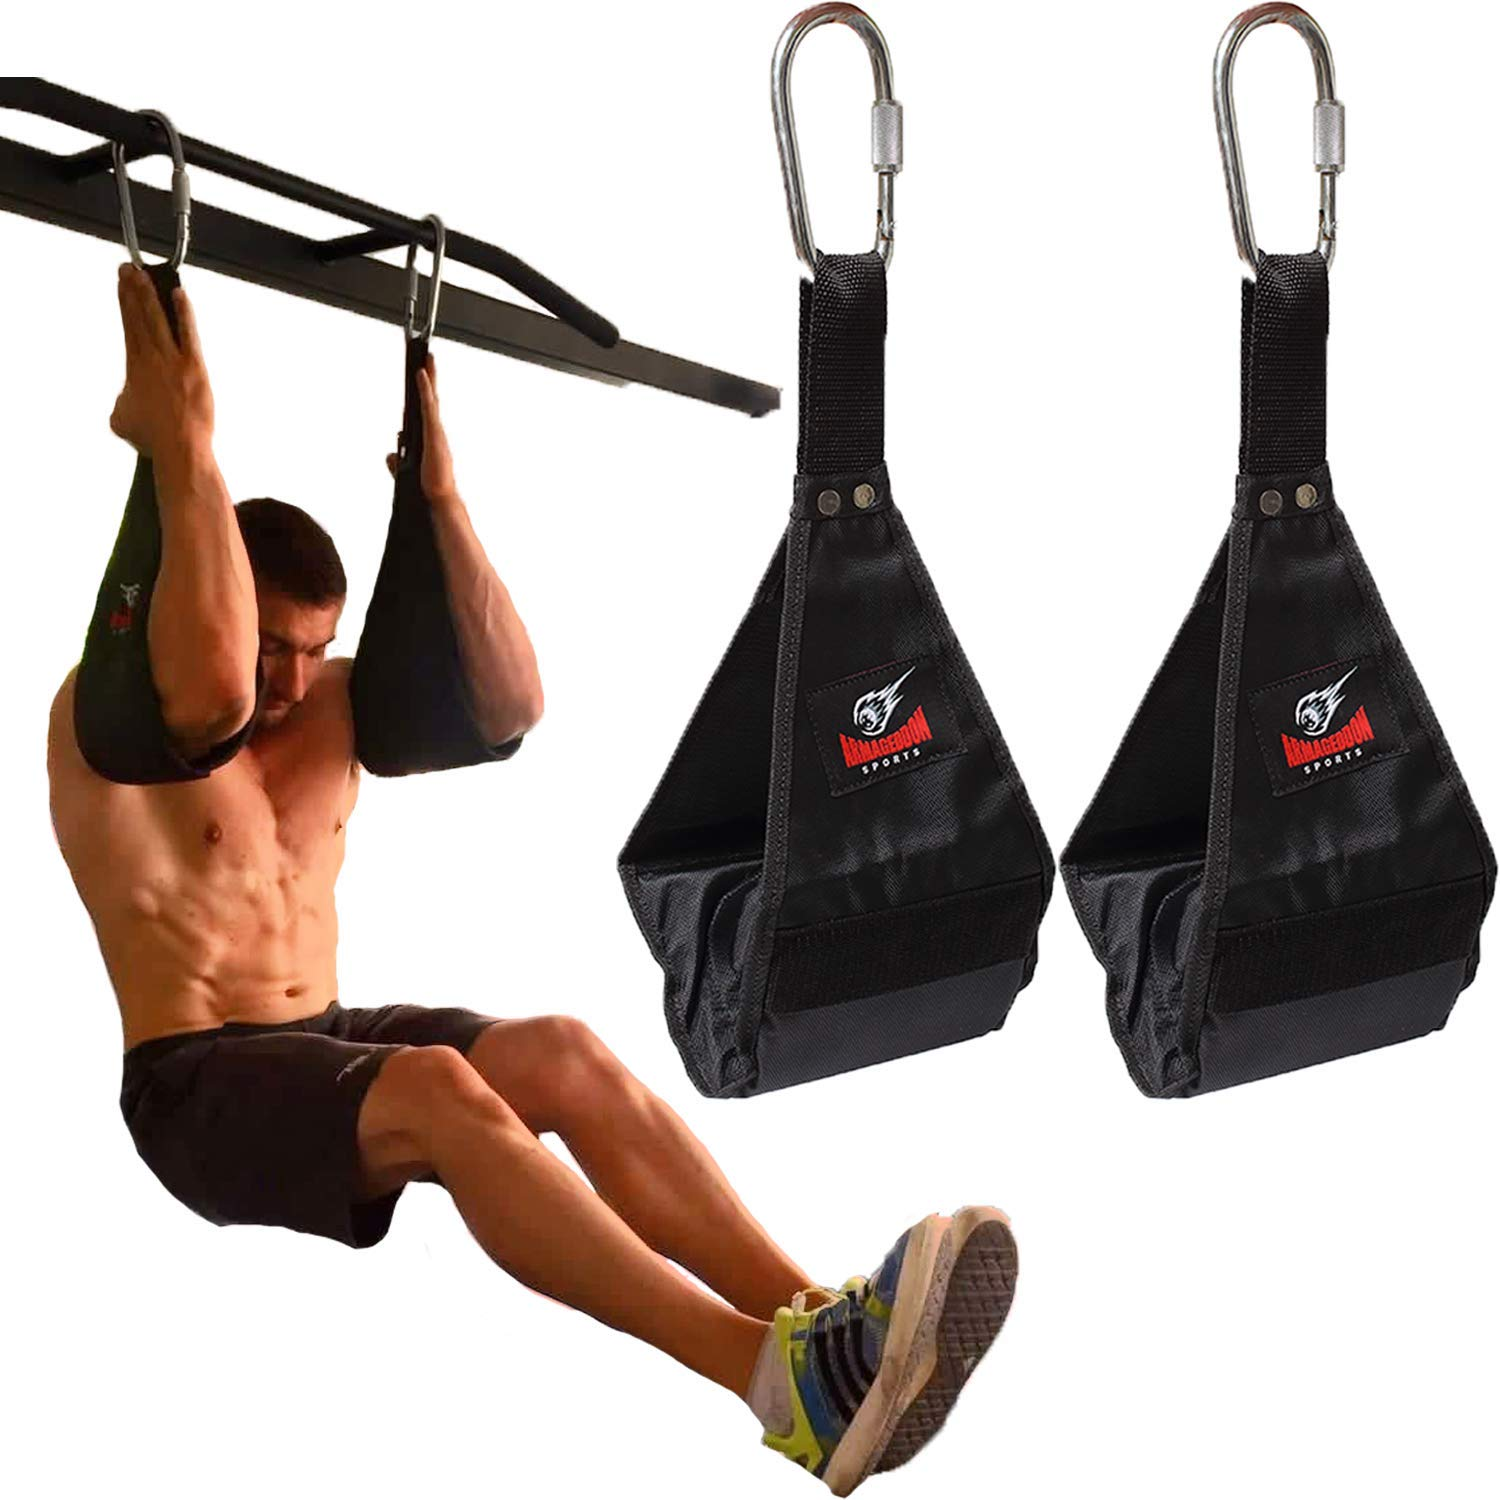 Premium Ab Slings Straps – Rip-Resistant Heavy Duty Pair for Pull Up Bar Hanging Leg Raiser Fitness with Big D-Ring Steel Quick Connectors, Superb Arm Padding for Abdominal Training Workout Equipment